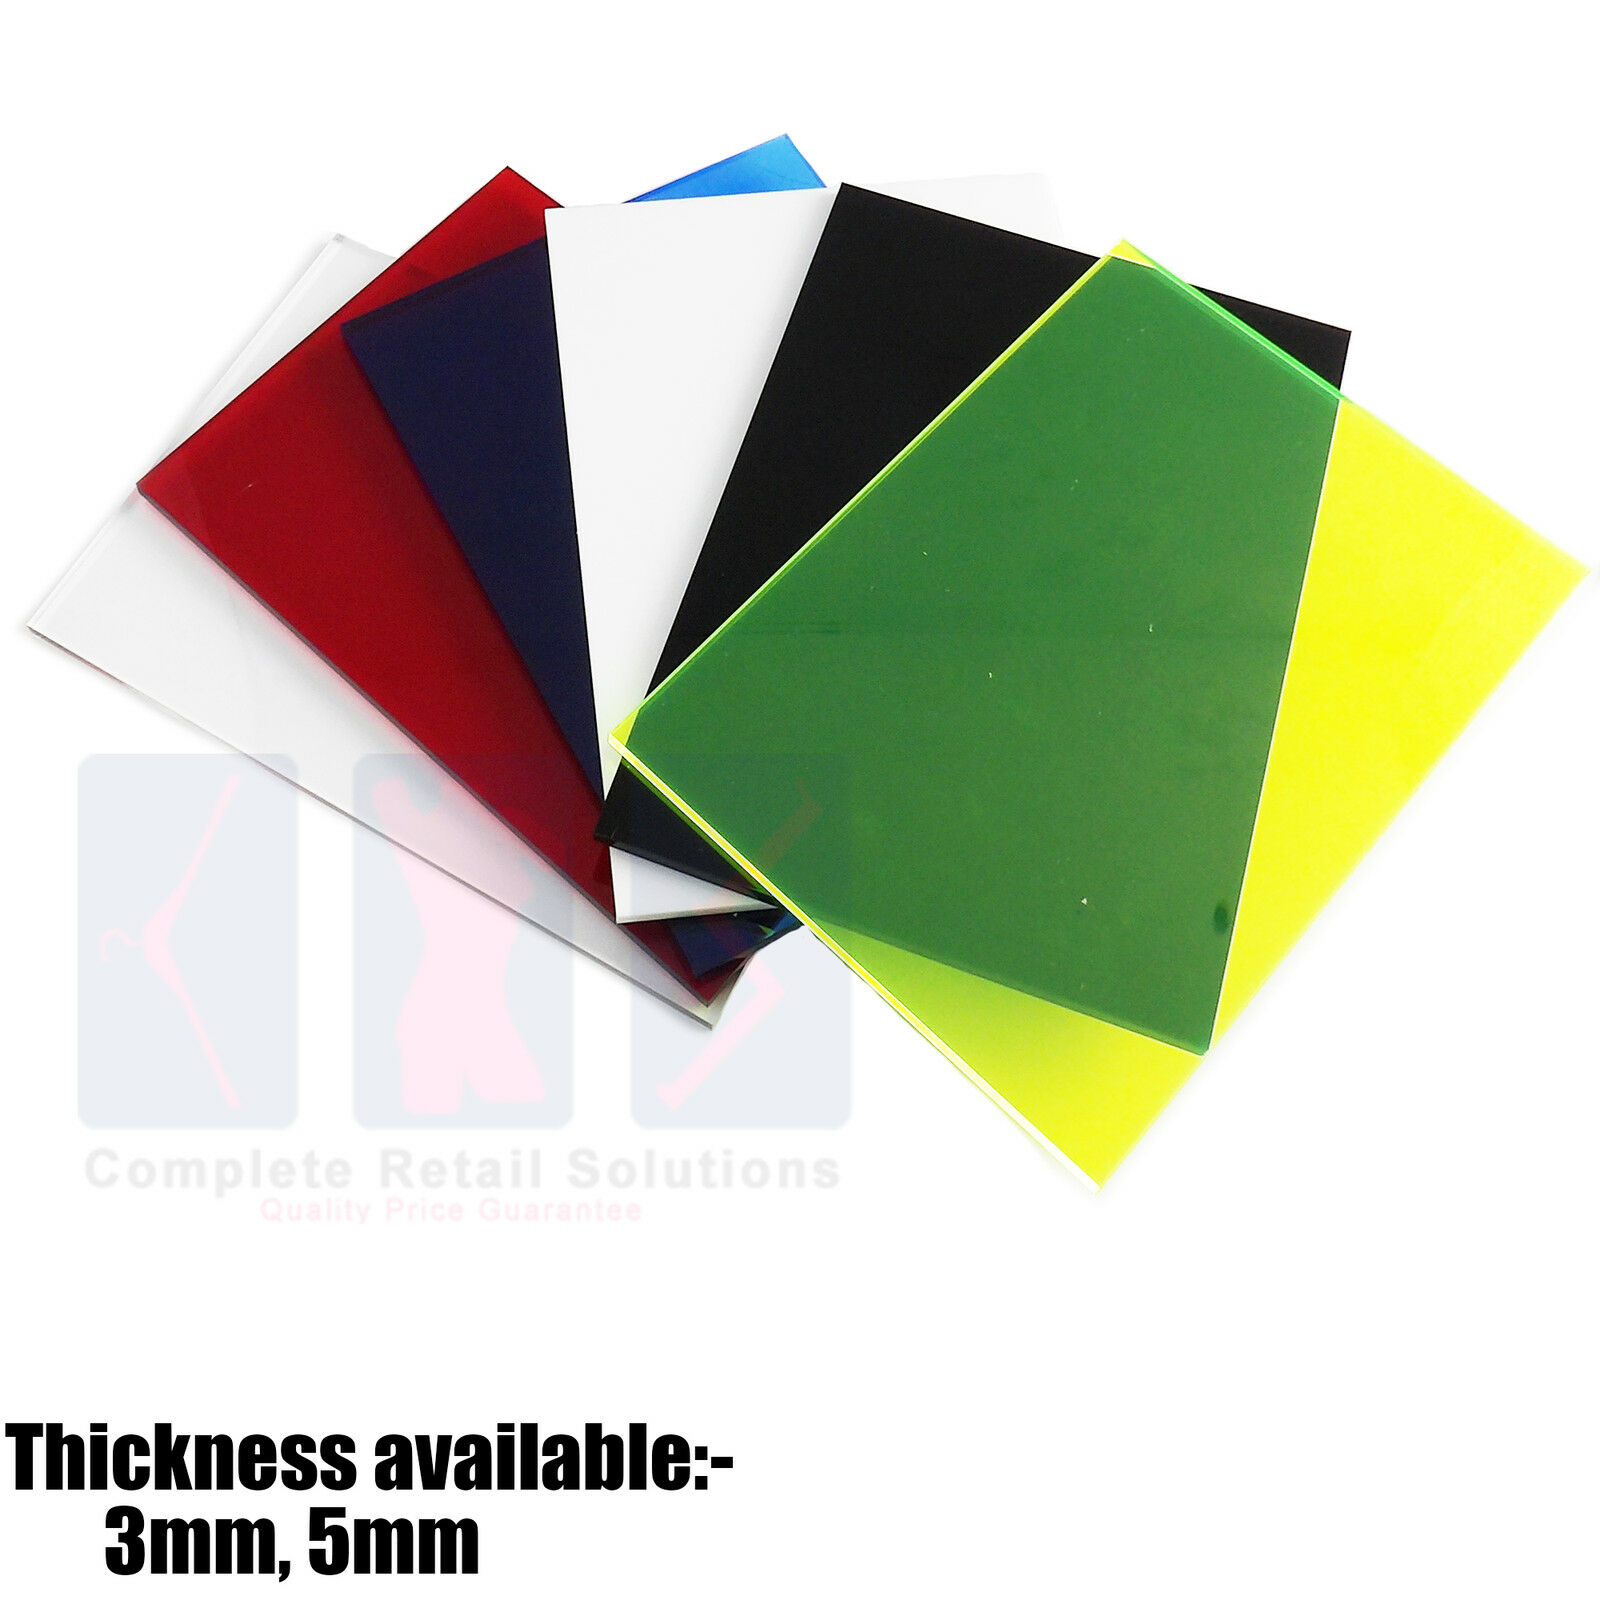 New Colour Perspex Acrylic Sheet Plastic Material Panel